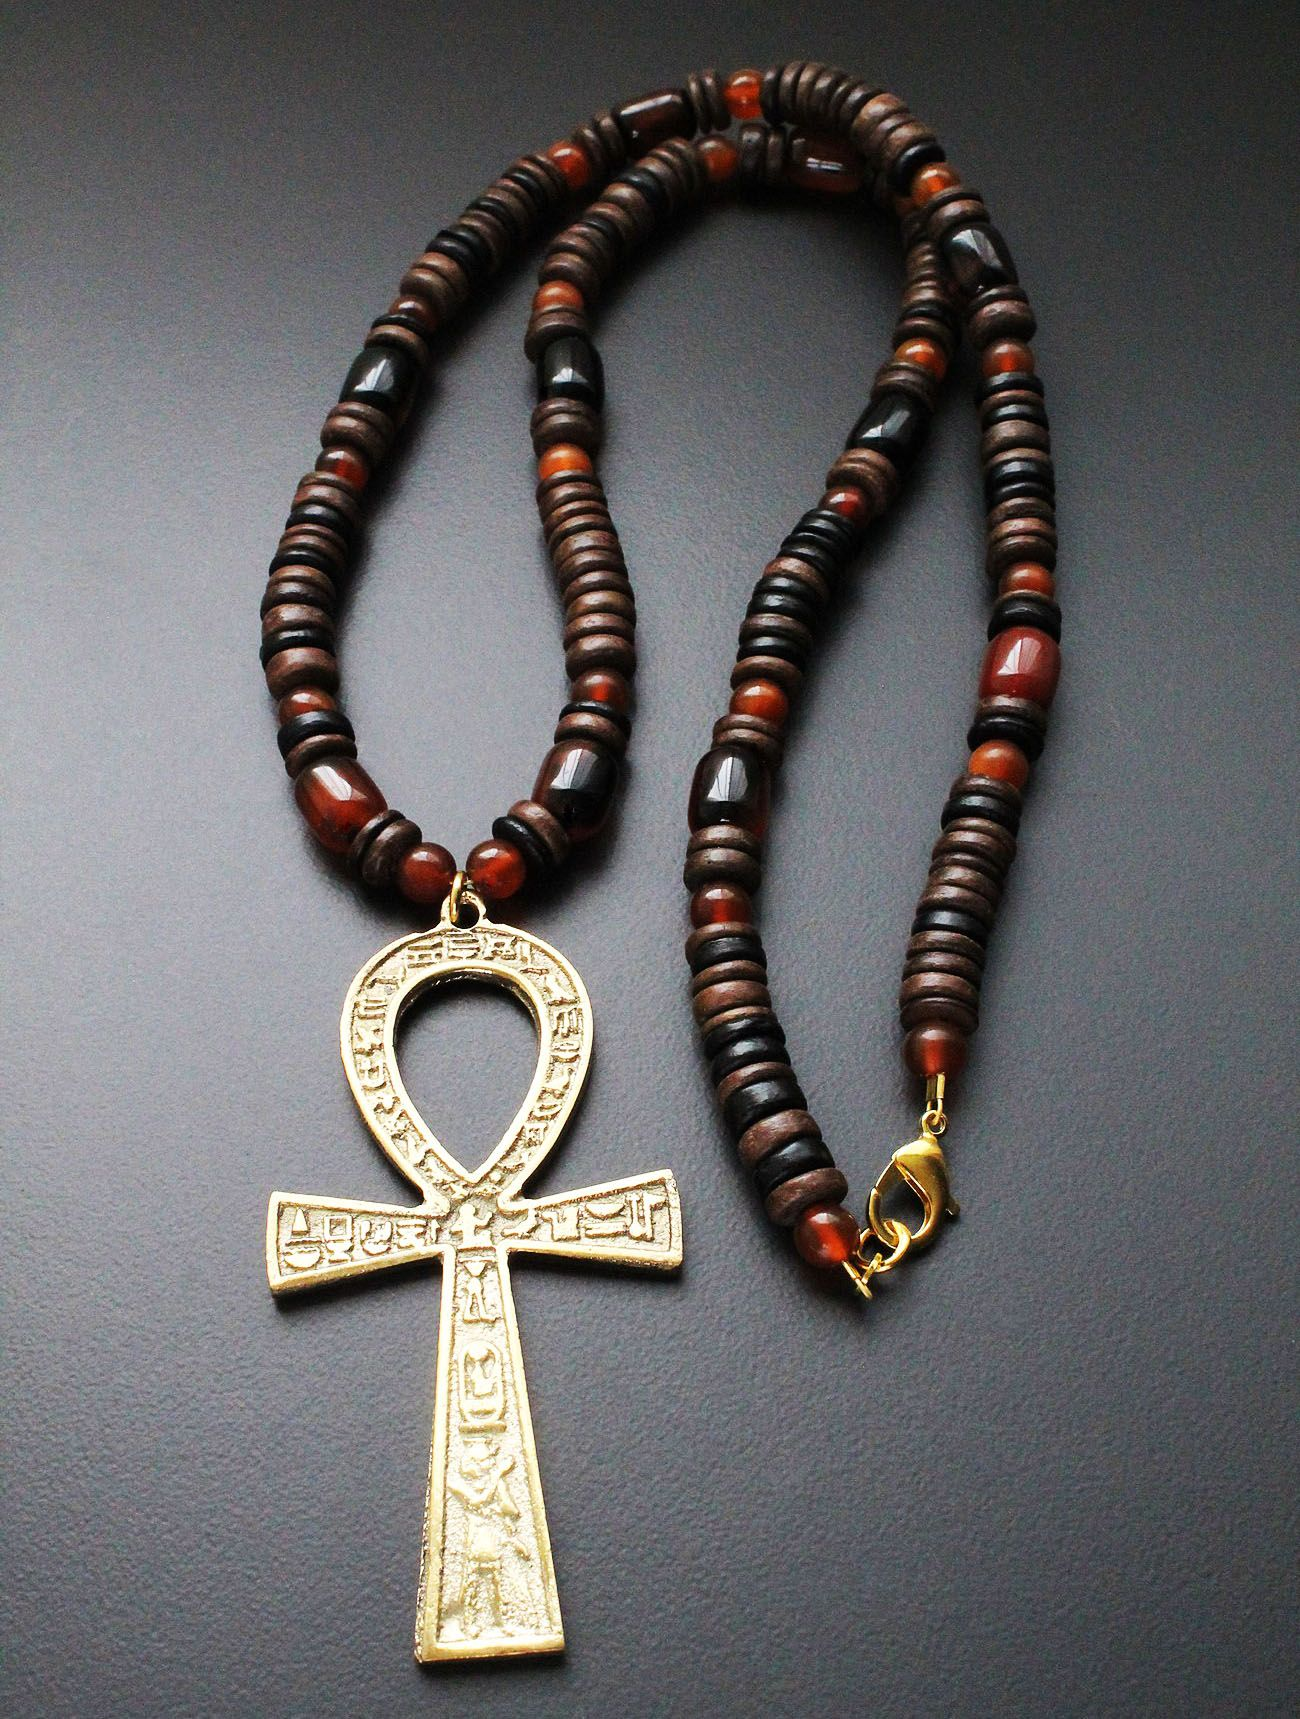 egyptian symbol necklace - photo #35